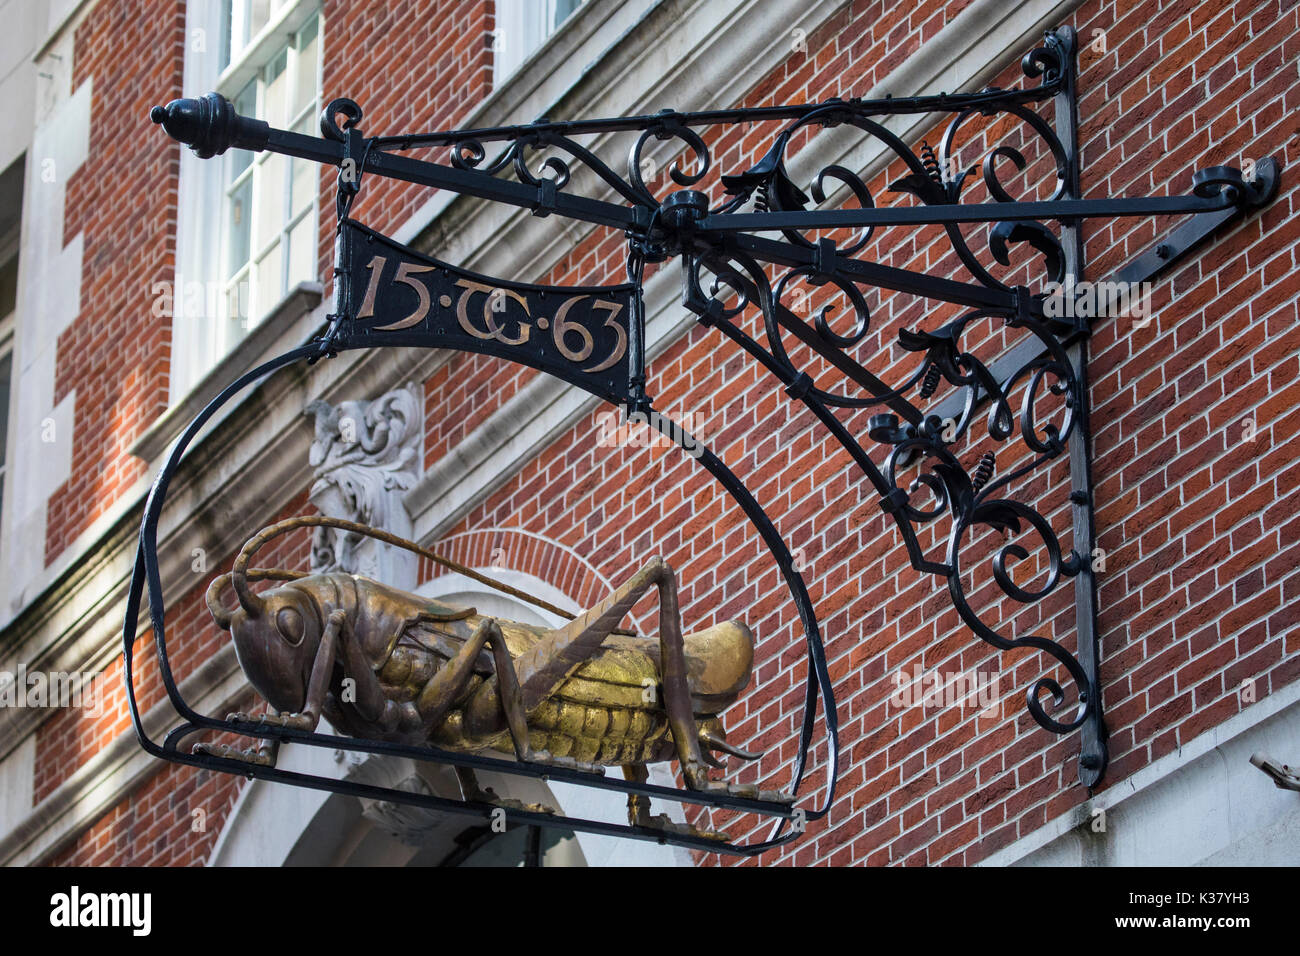 A Grasshopper sculpture hanging on Lombard Street in London, UK.  The Grasshopper is the representation of the family crest of Sir Thomas Gresham. - Stock Image